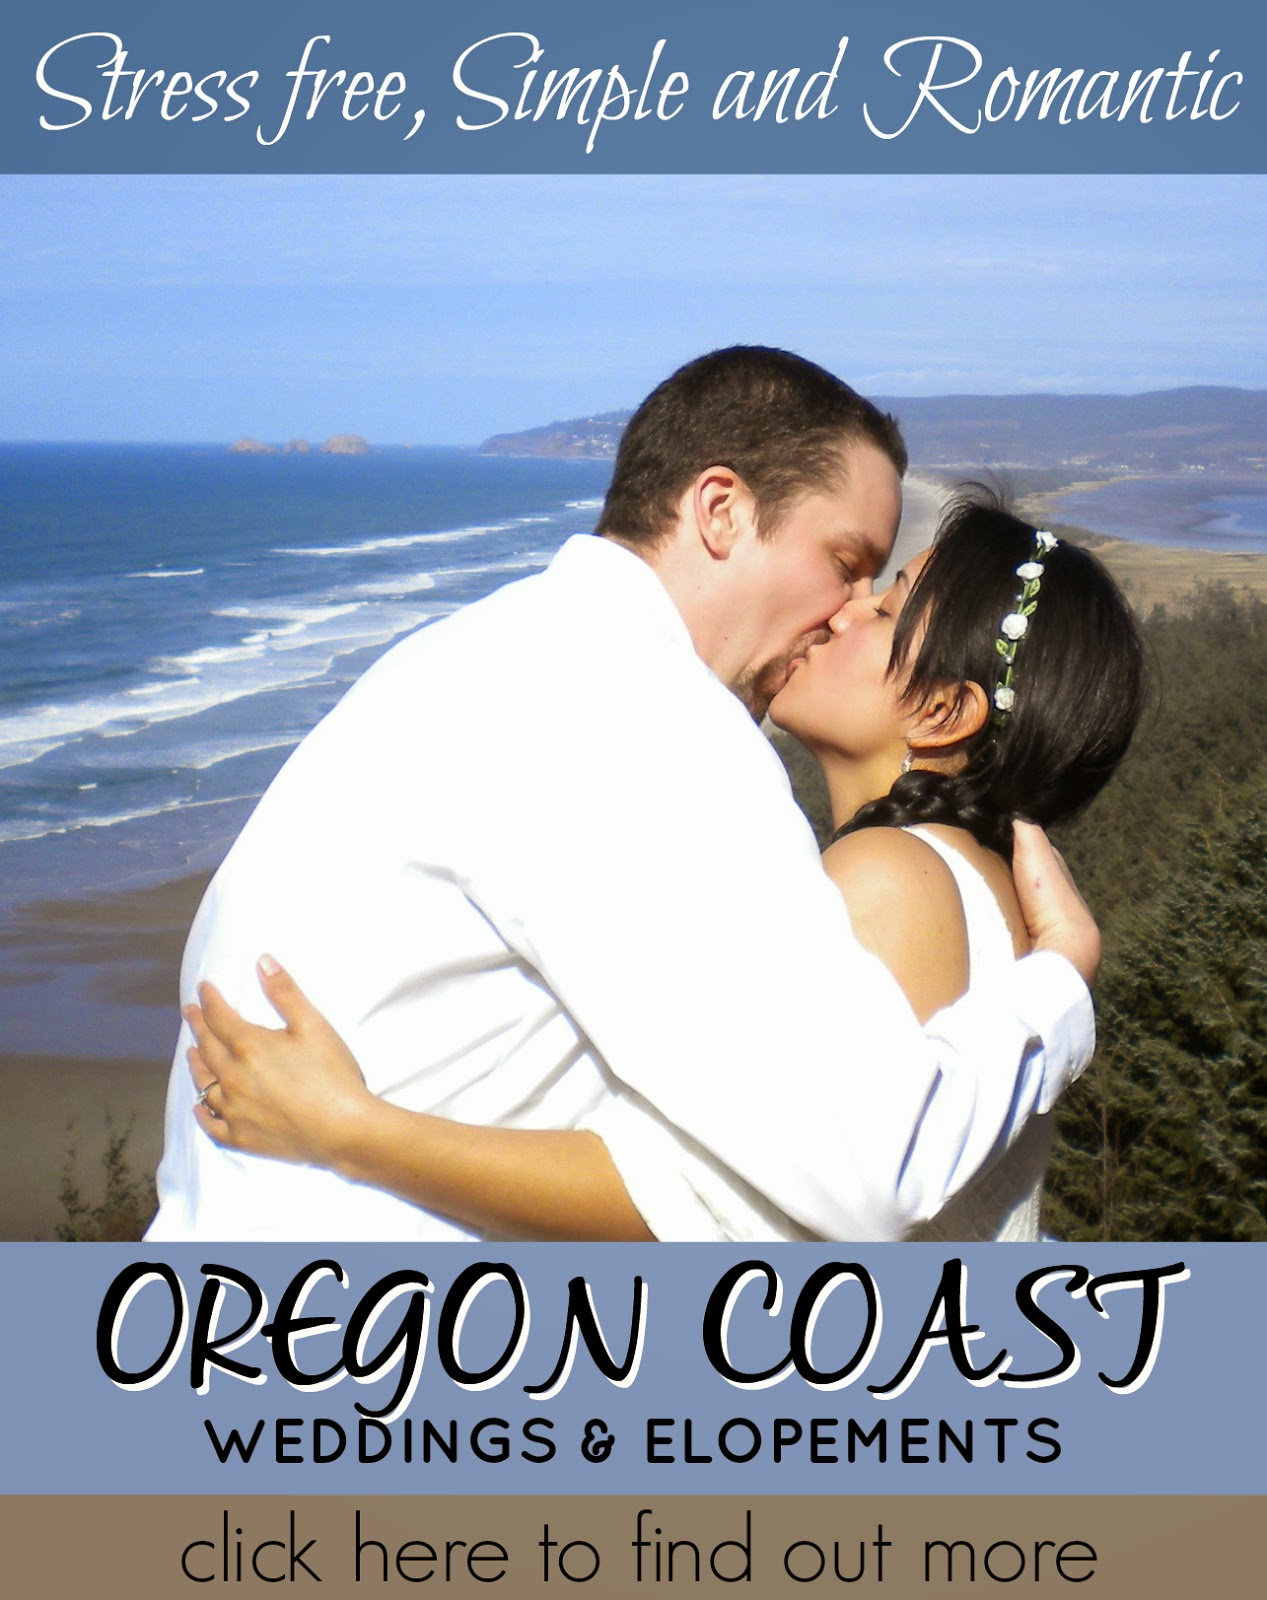 http://orcoastweddings.com